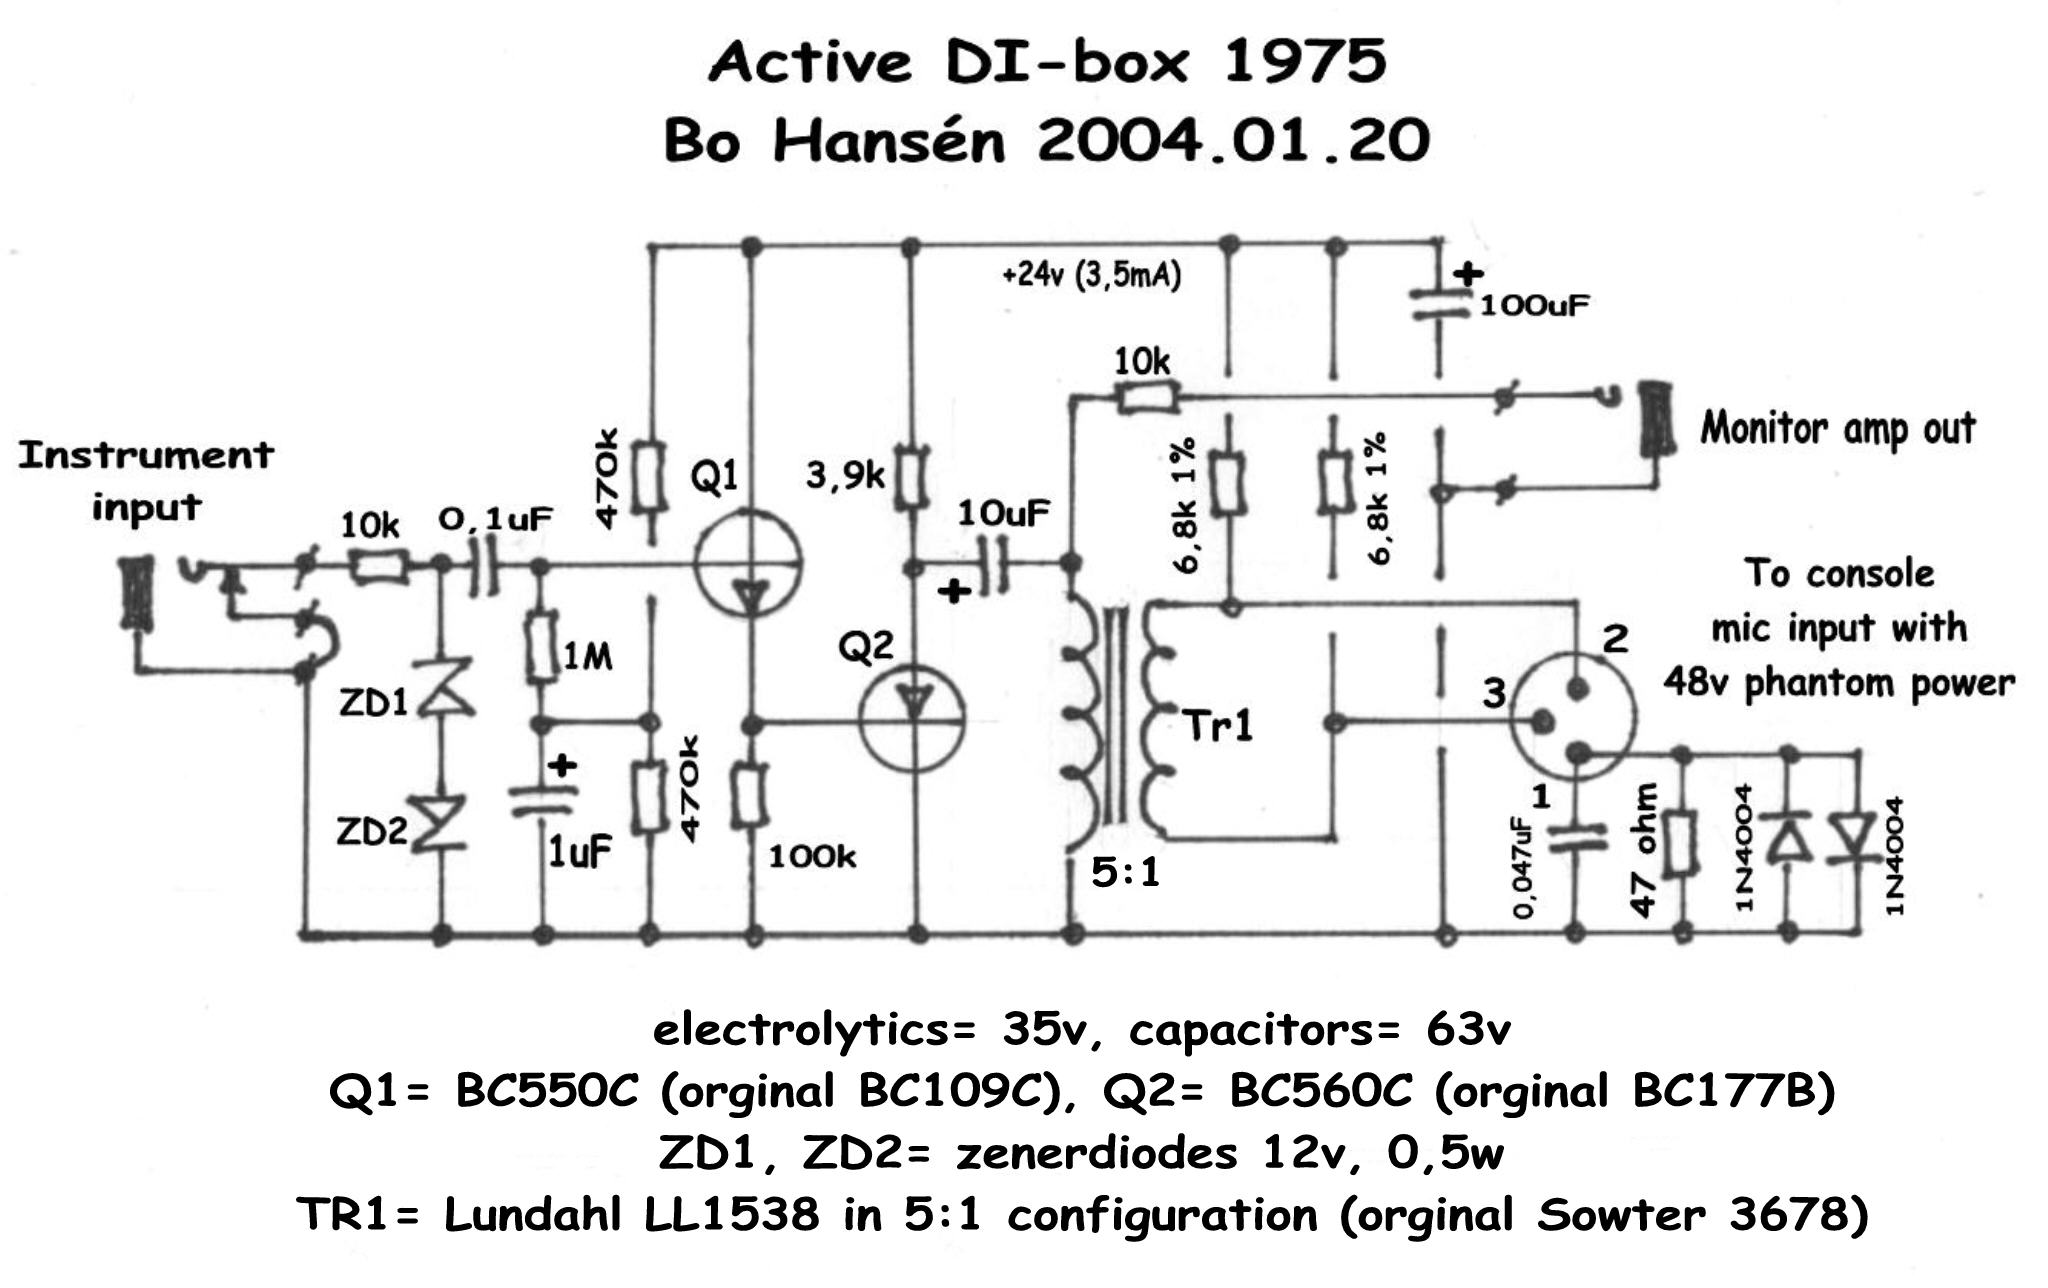 hansén audio gothenburg schematic active di box 1975 jpg 241074 byte